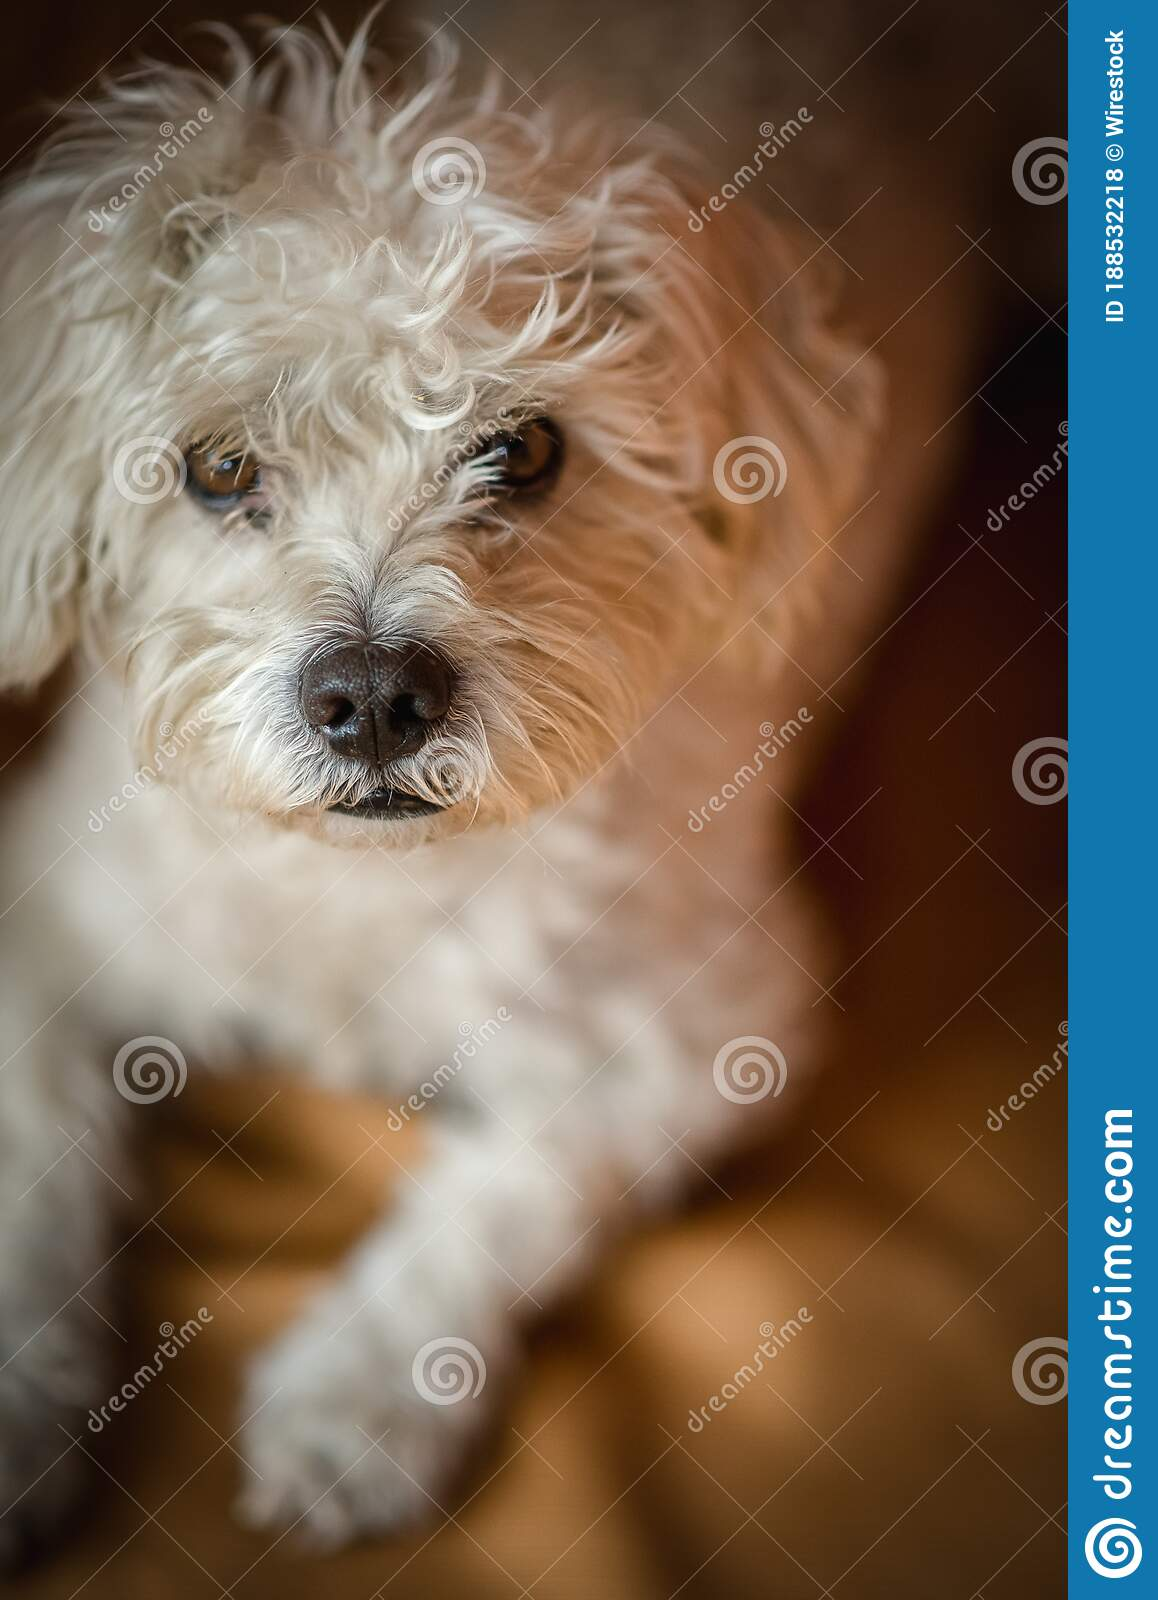 Vertical Shot Of A Cute White Maltese Dog With Brown Eyes Quietly Sitting And Looking At The Camera Stock Photo Image Of Domestic Beautiful 188532218